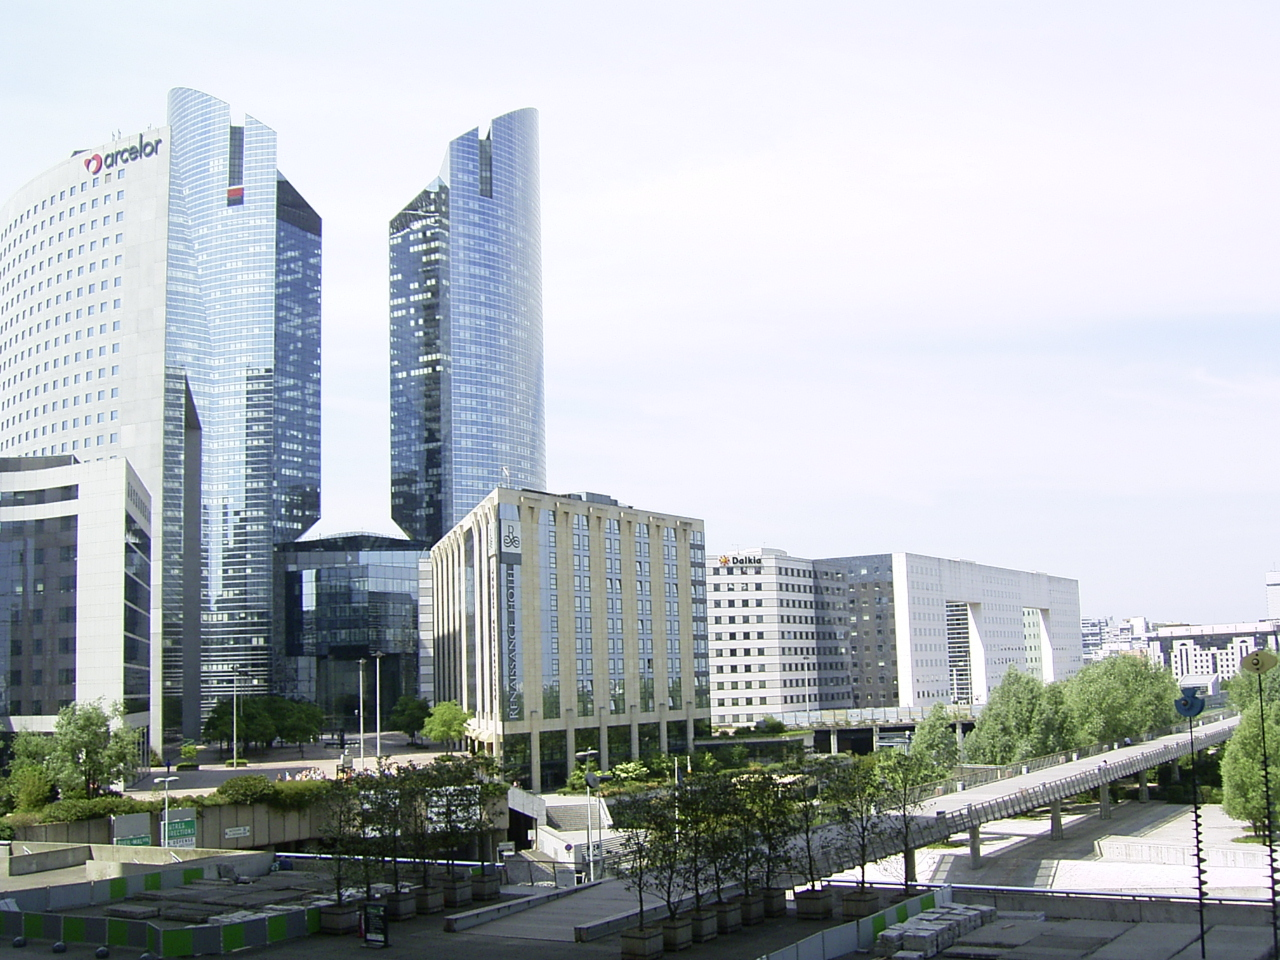 File:La Defense 4.jpg - Wikipedia, the free encyclopedia